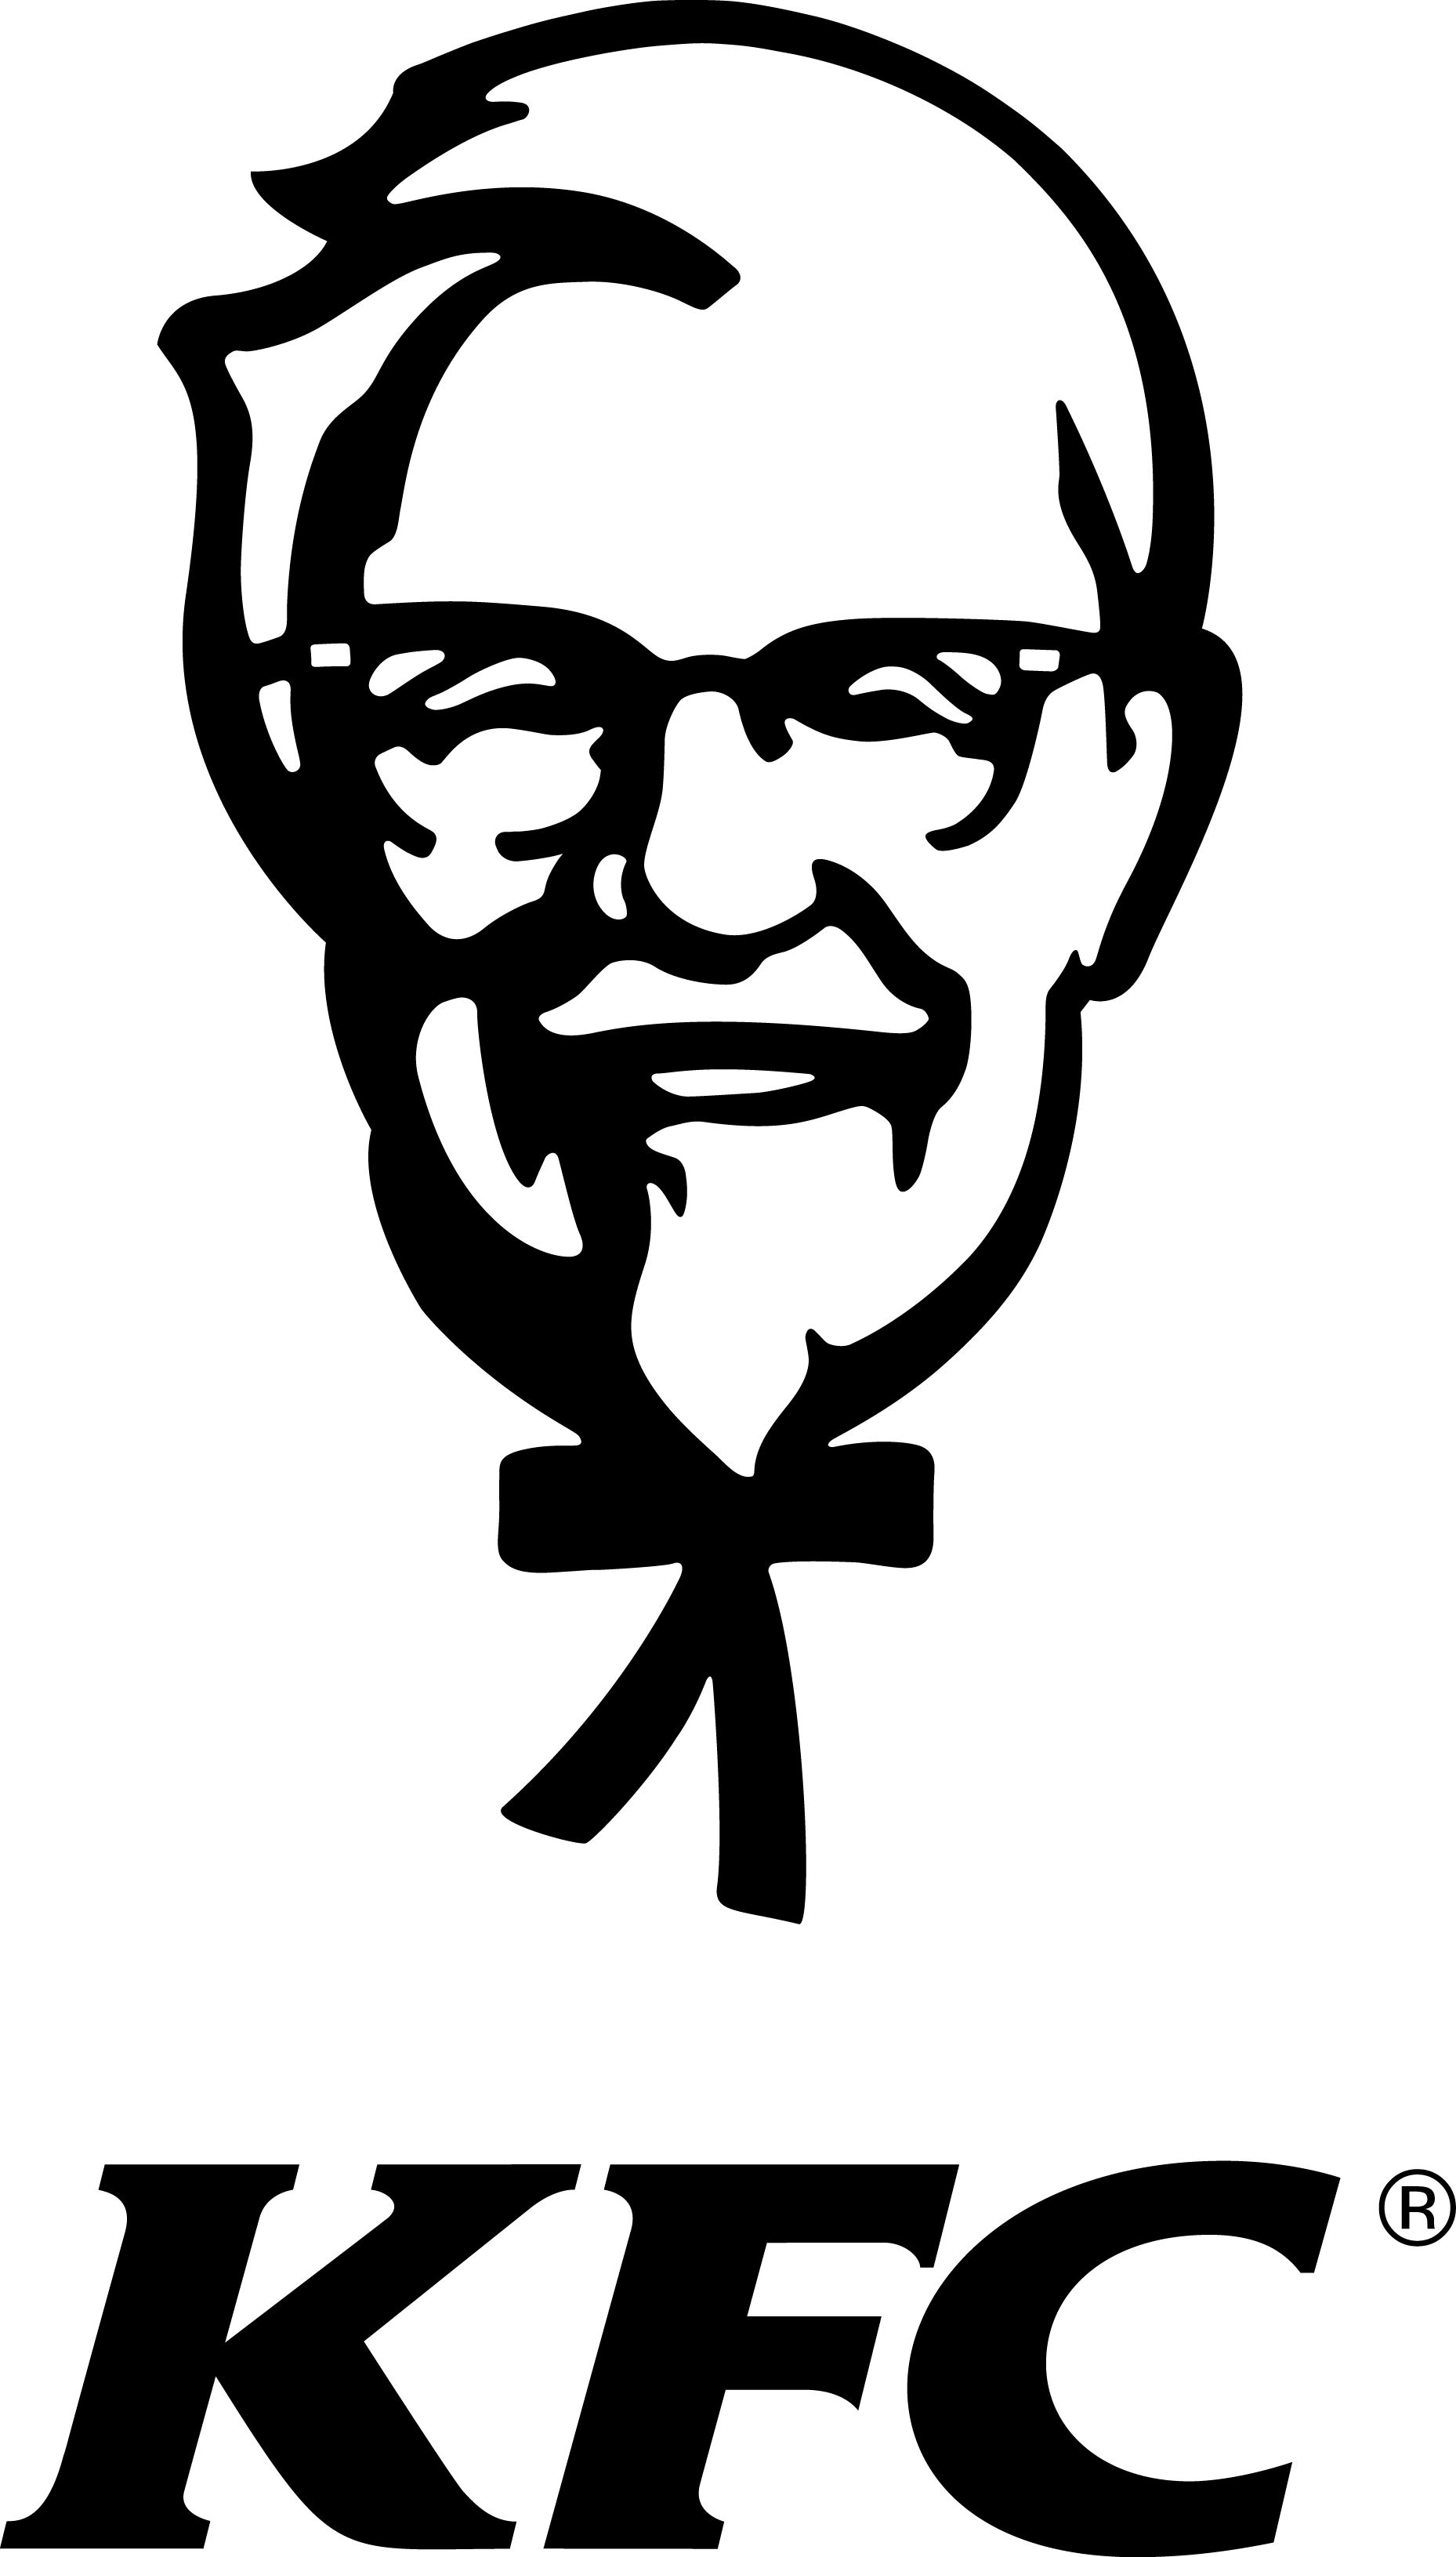 Kfc clipart black and white KFC Finger the Sanders KFC